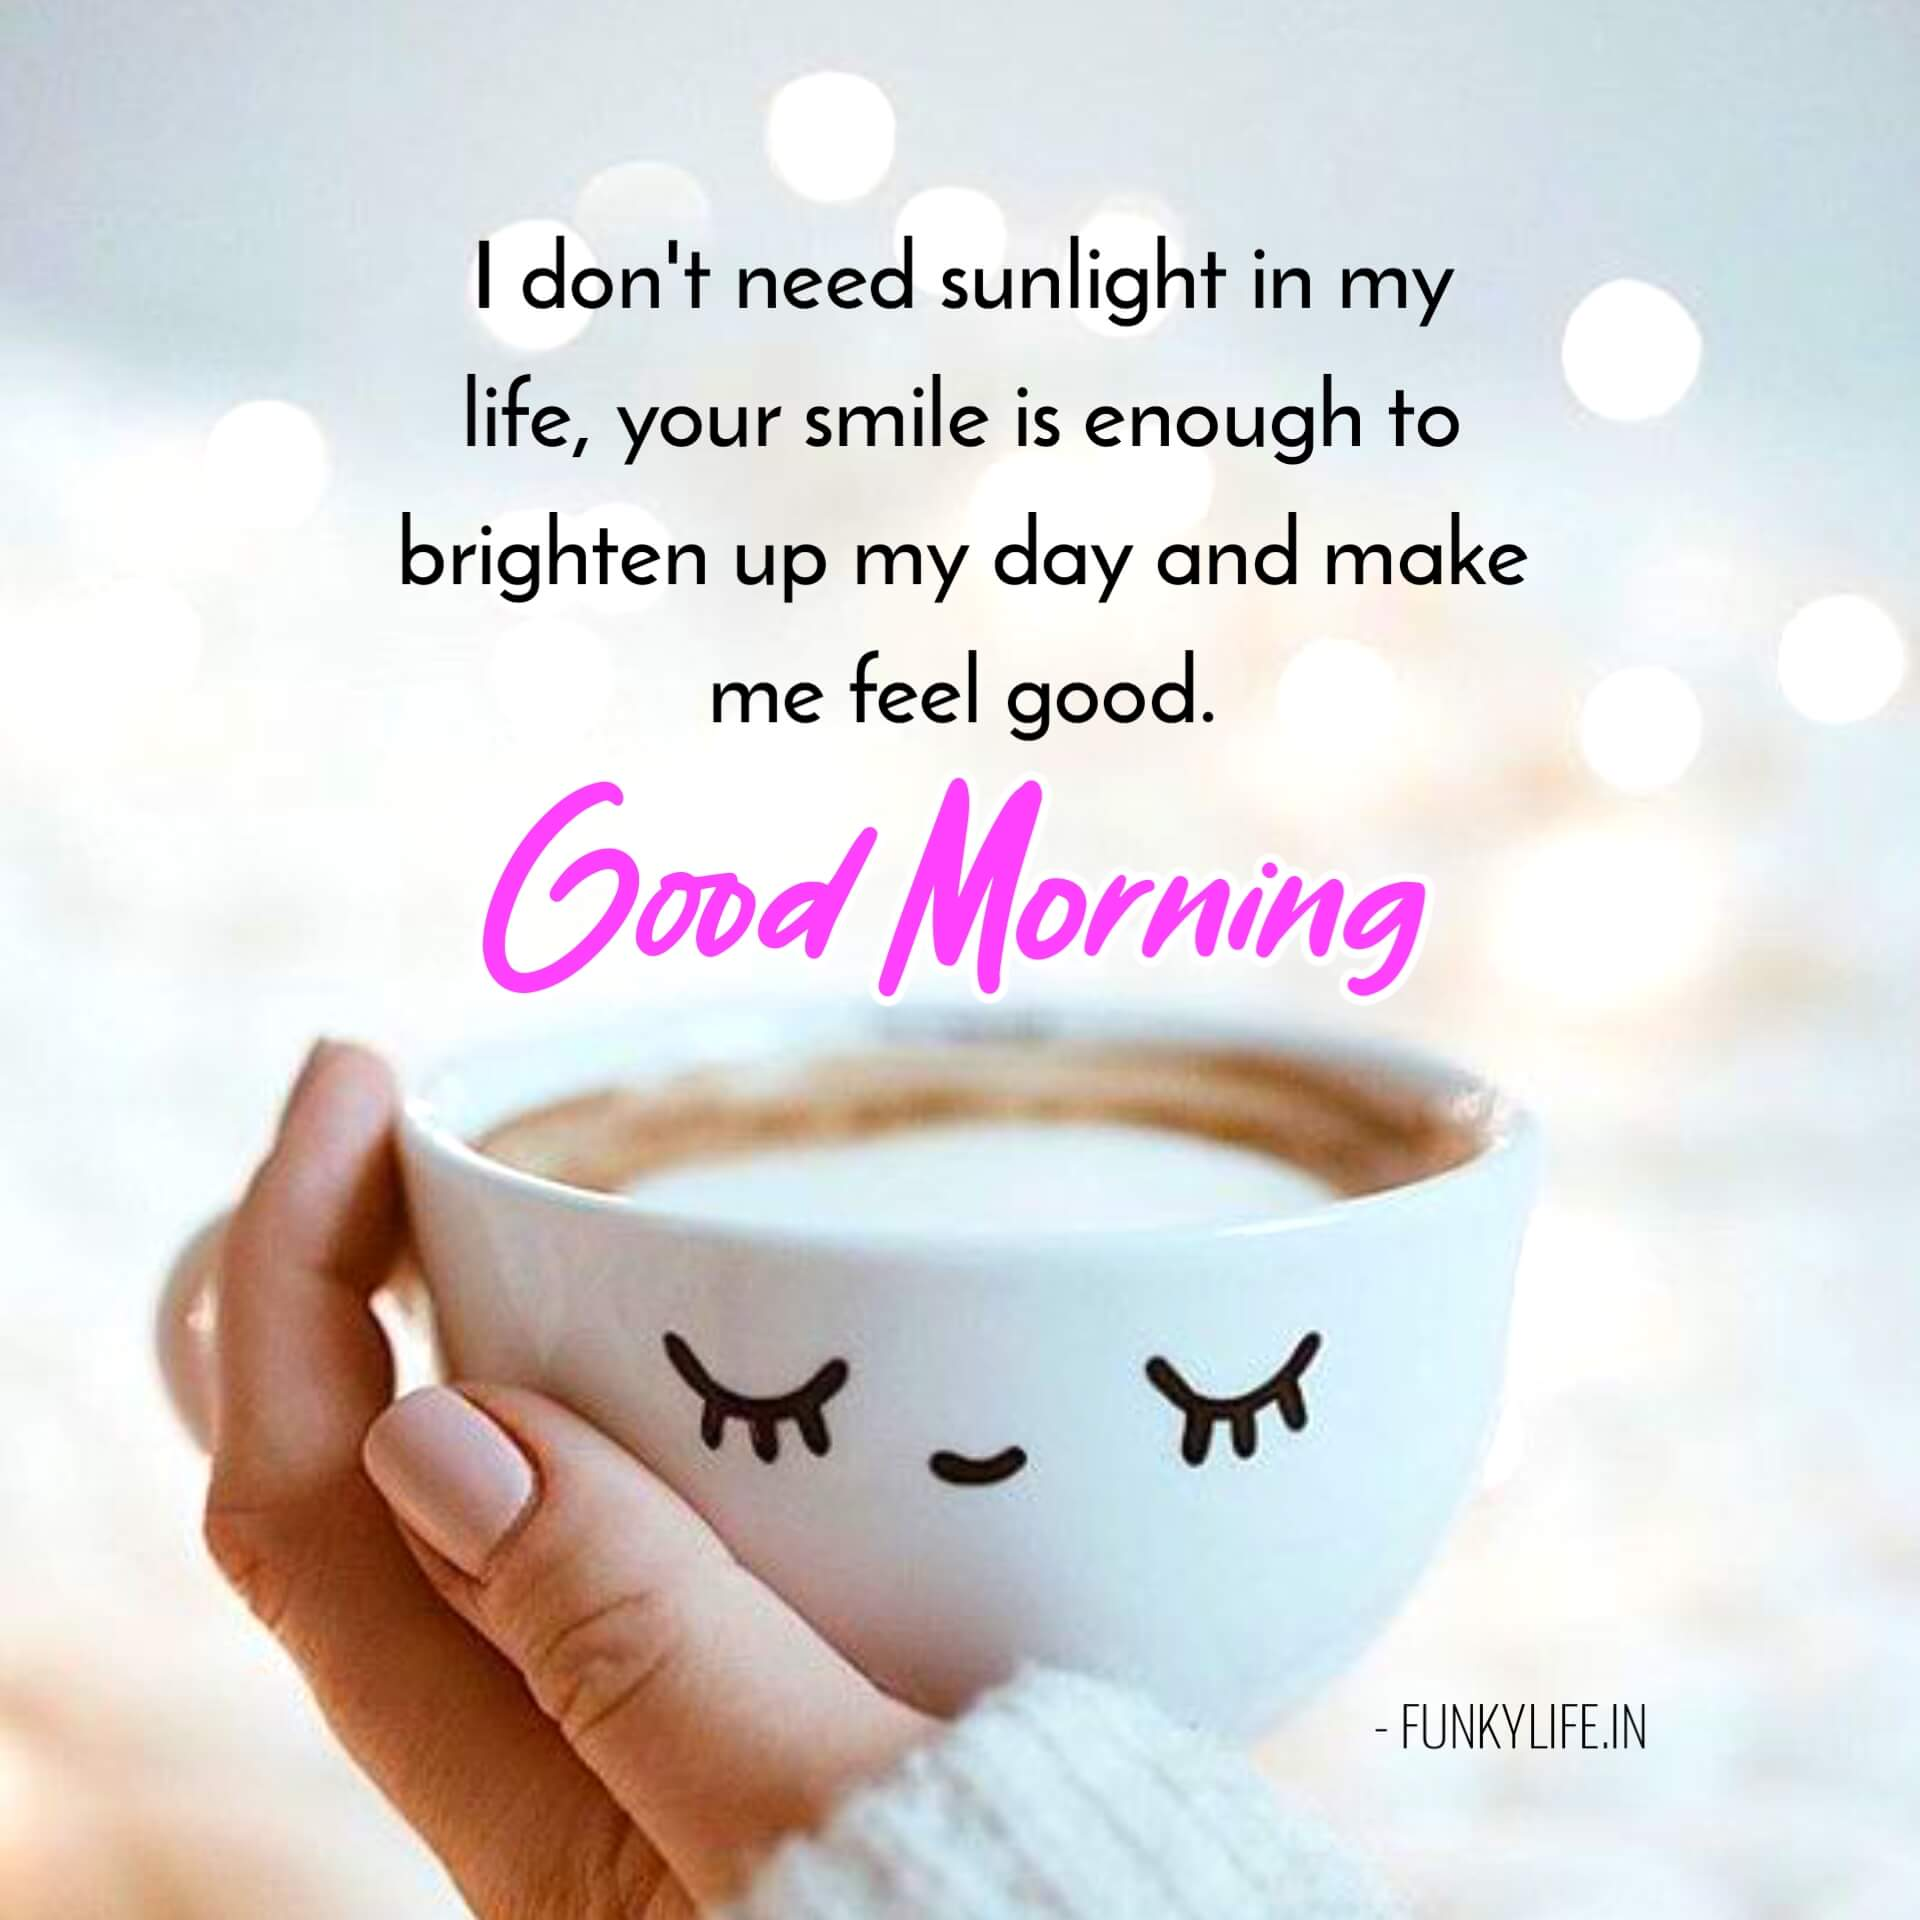 Good Morning Messages With Images